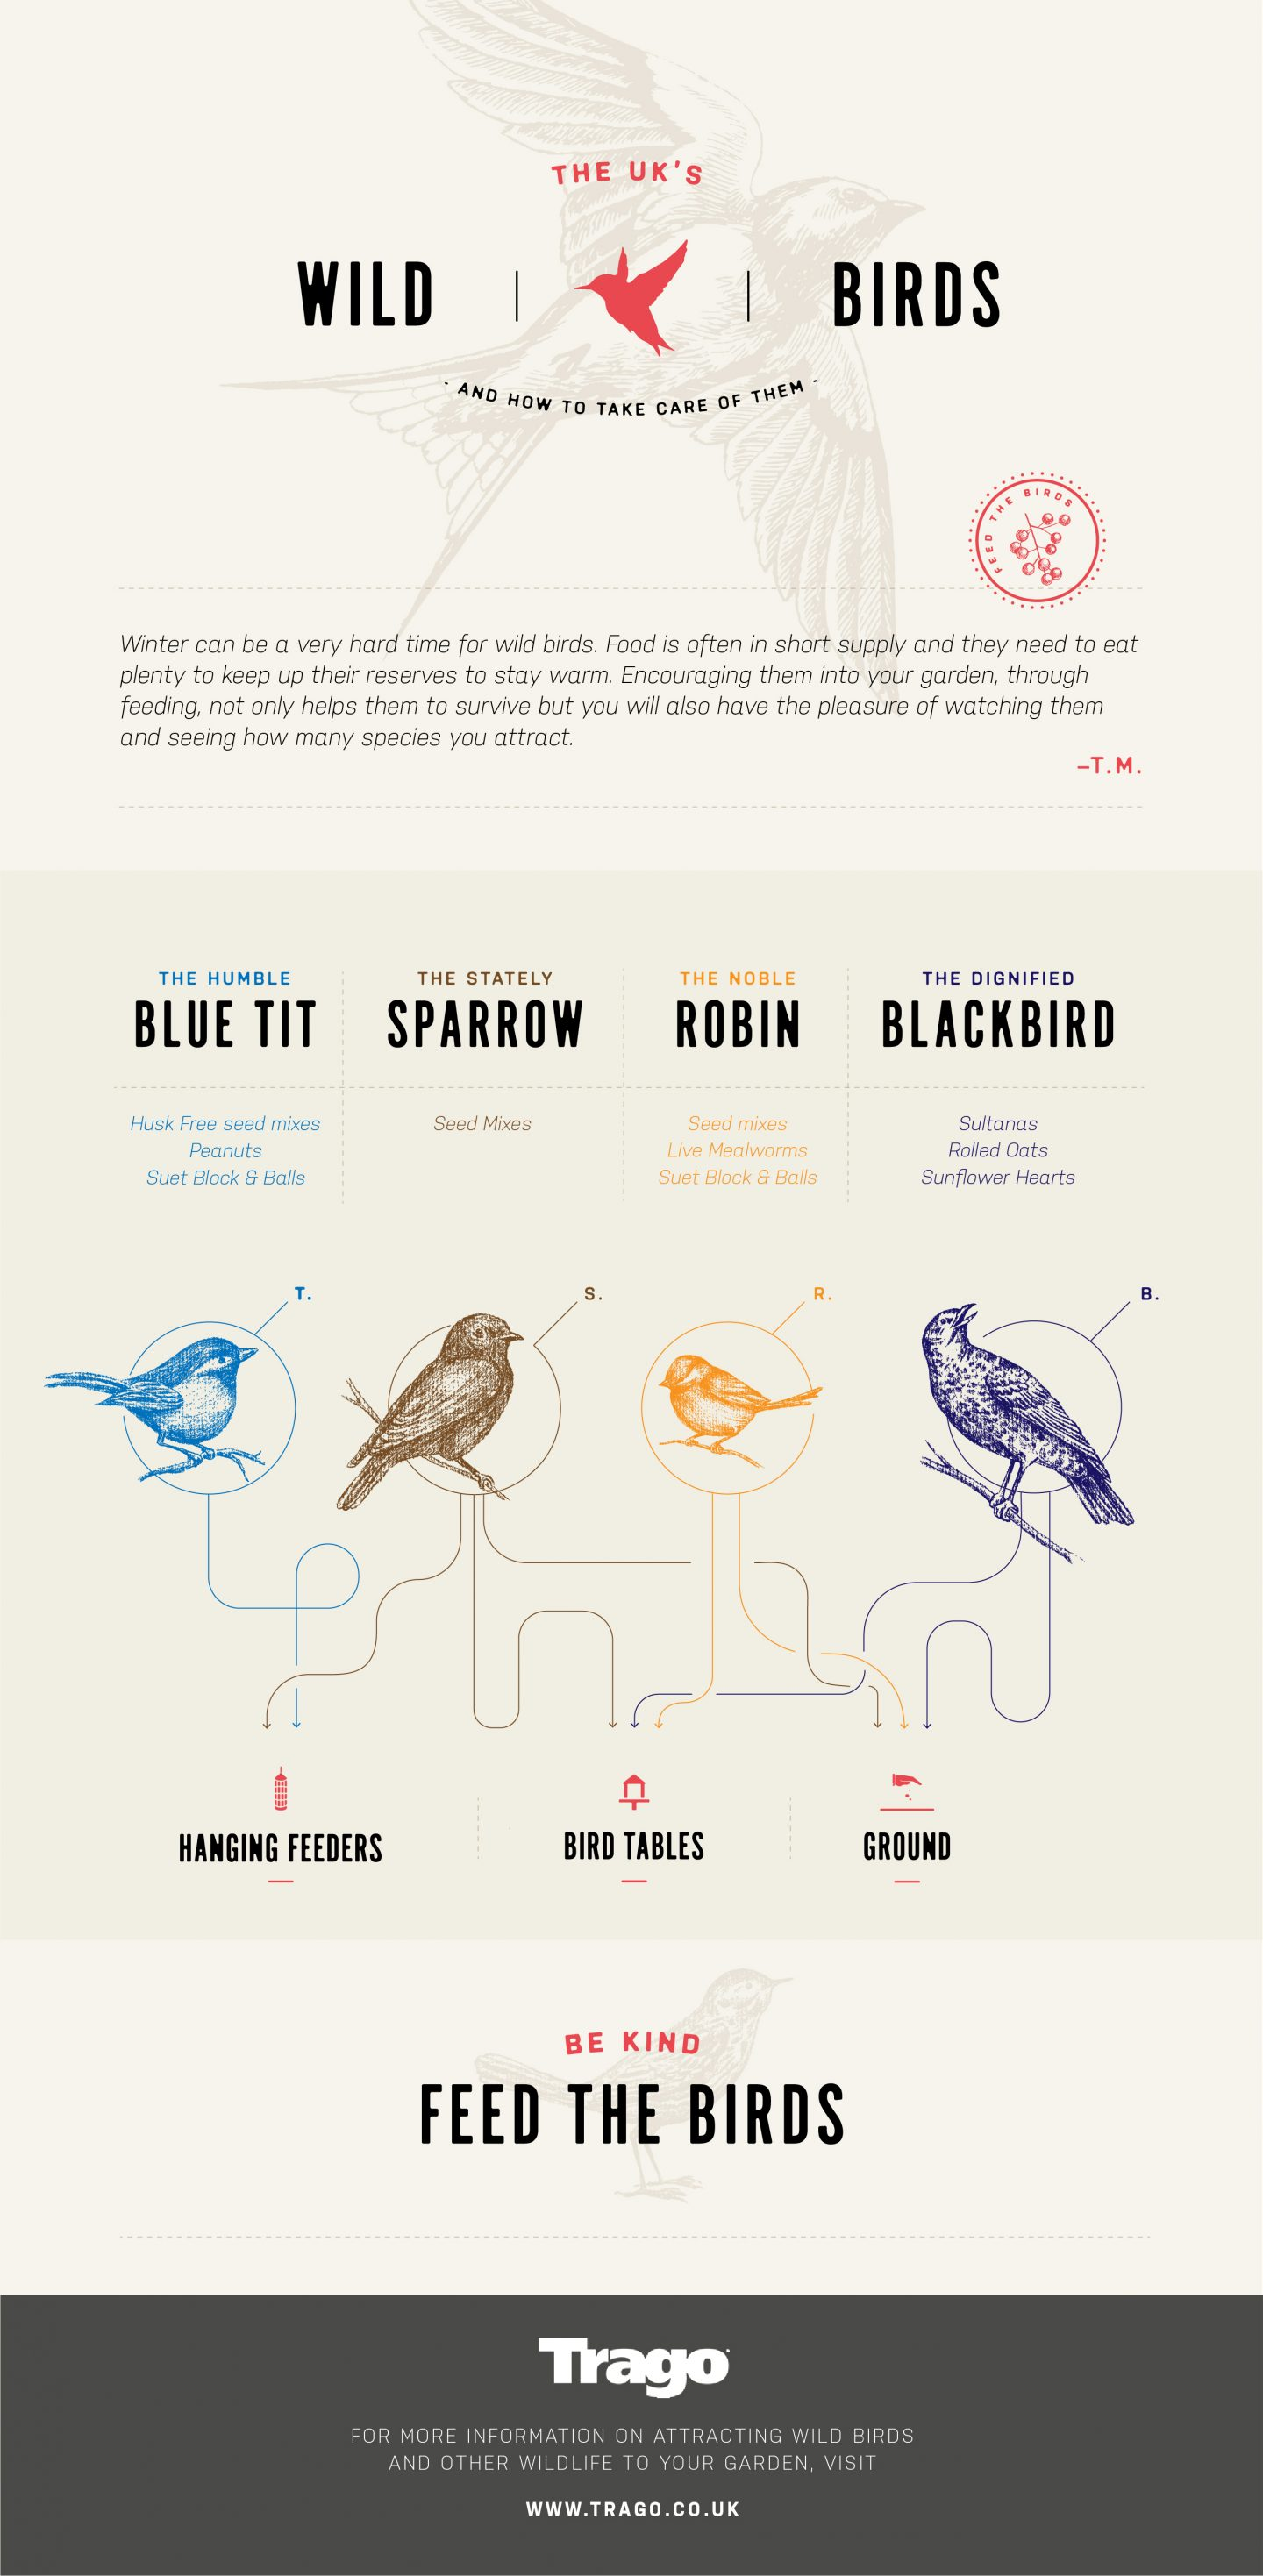 An infographic about British wild birds and what to feed them in the winter